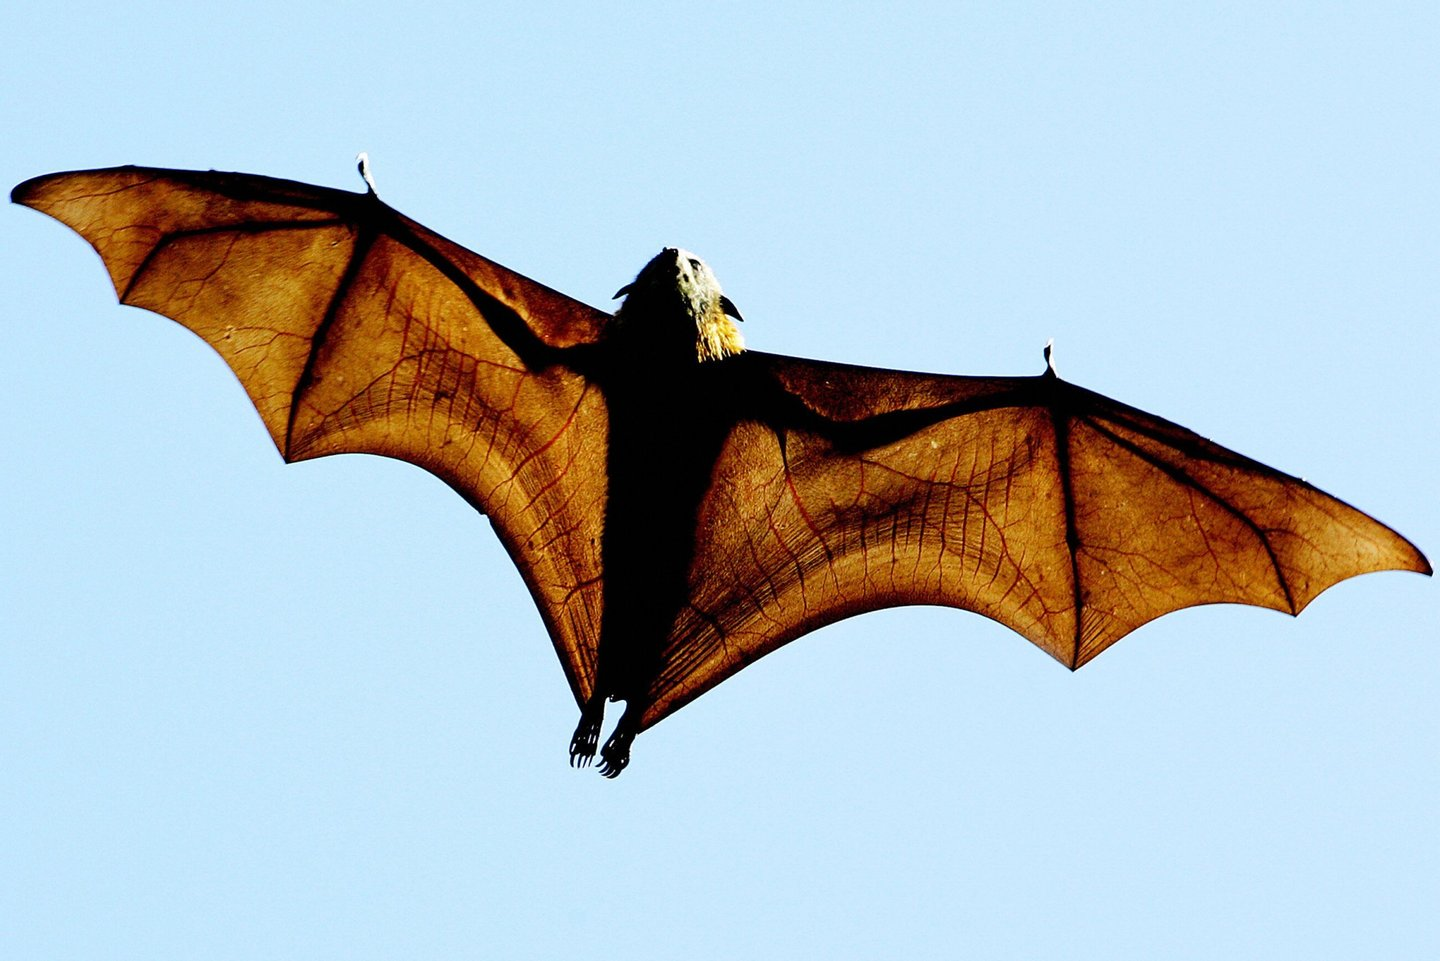 SYDNEY, AUSTRALIA:  A grey-headed Flying-fox morego (Pteropus poliocephalus), a native Australian bat, stretches its leathery wings as it flies high over Sydney's Botanical Gardens, 17 August 2005. The bats settled in the gardens many years ago as much of their natural habitat along the coast of New South Wales has been cleared for timber, agriculture and urban development. At night the bats feed on the fruits of many native plants and provide an important function as they are one of the few species that pollinate flowers and disperse the seeds.  AFP PHOTO/Greg WOOD  (Photo credit should read GREG WOOD/AFP/Getty Images)